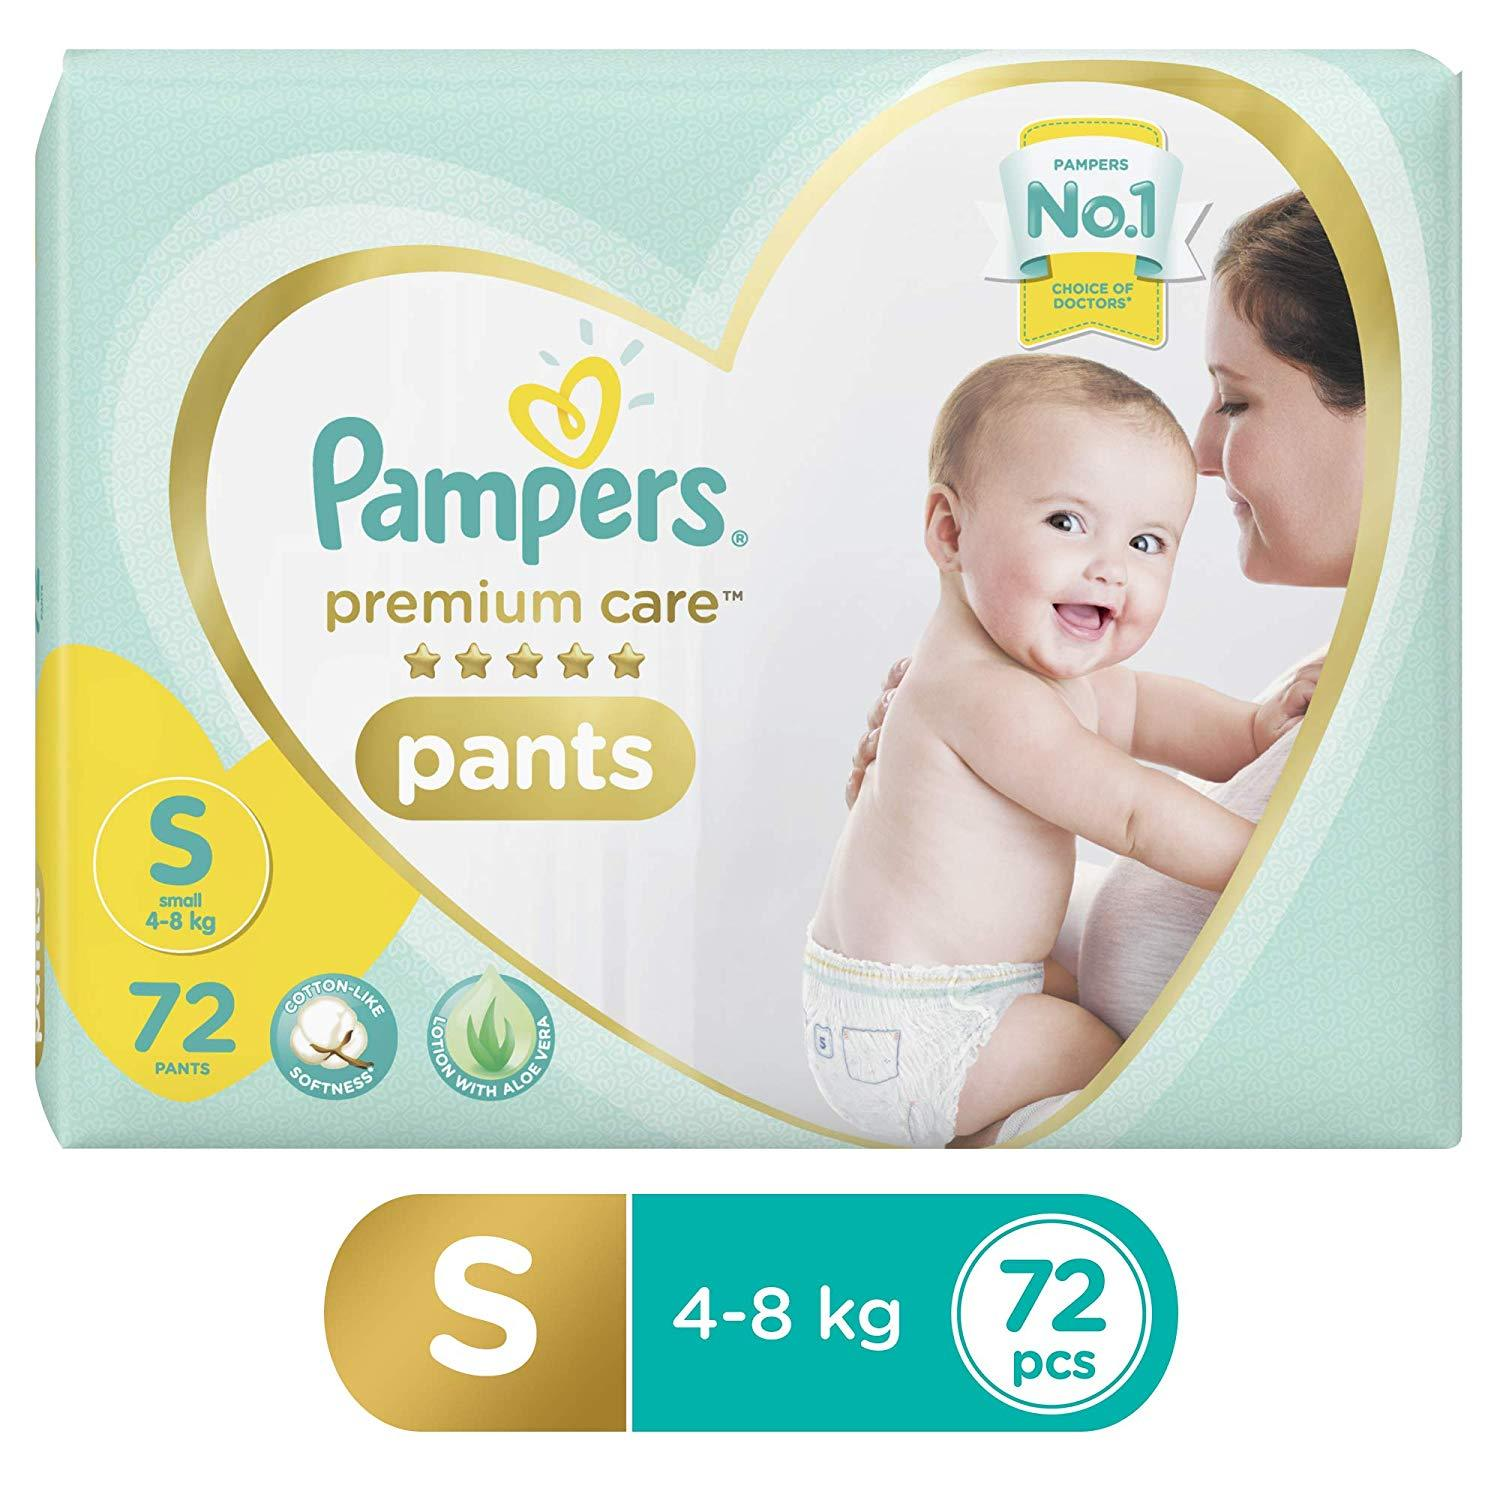 Pampers Premium Care Pants Diapers, Small - 72 Pieces